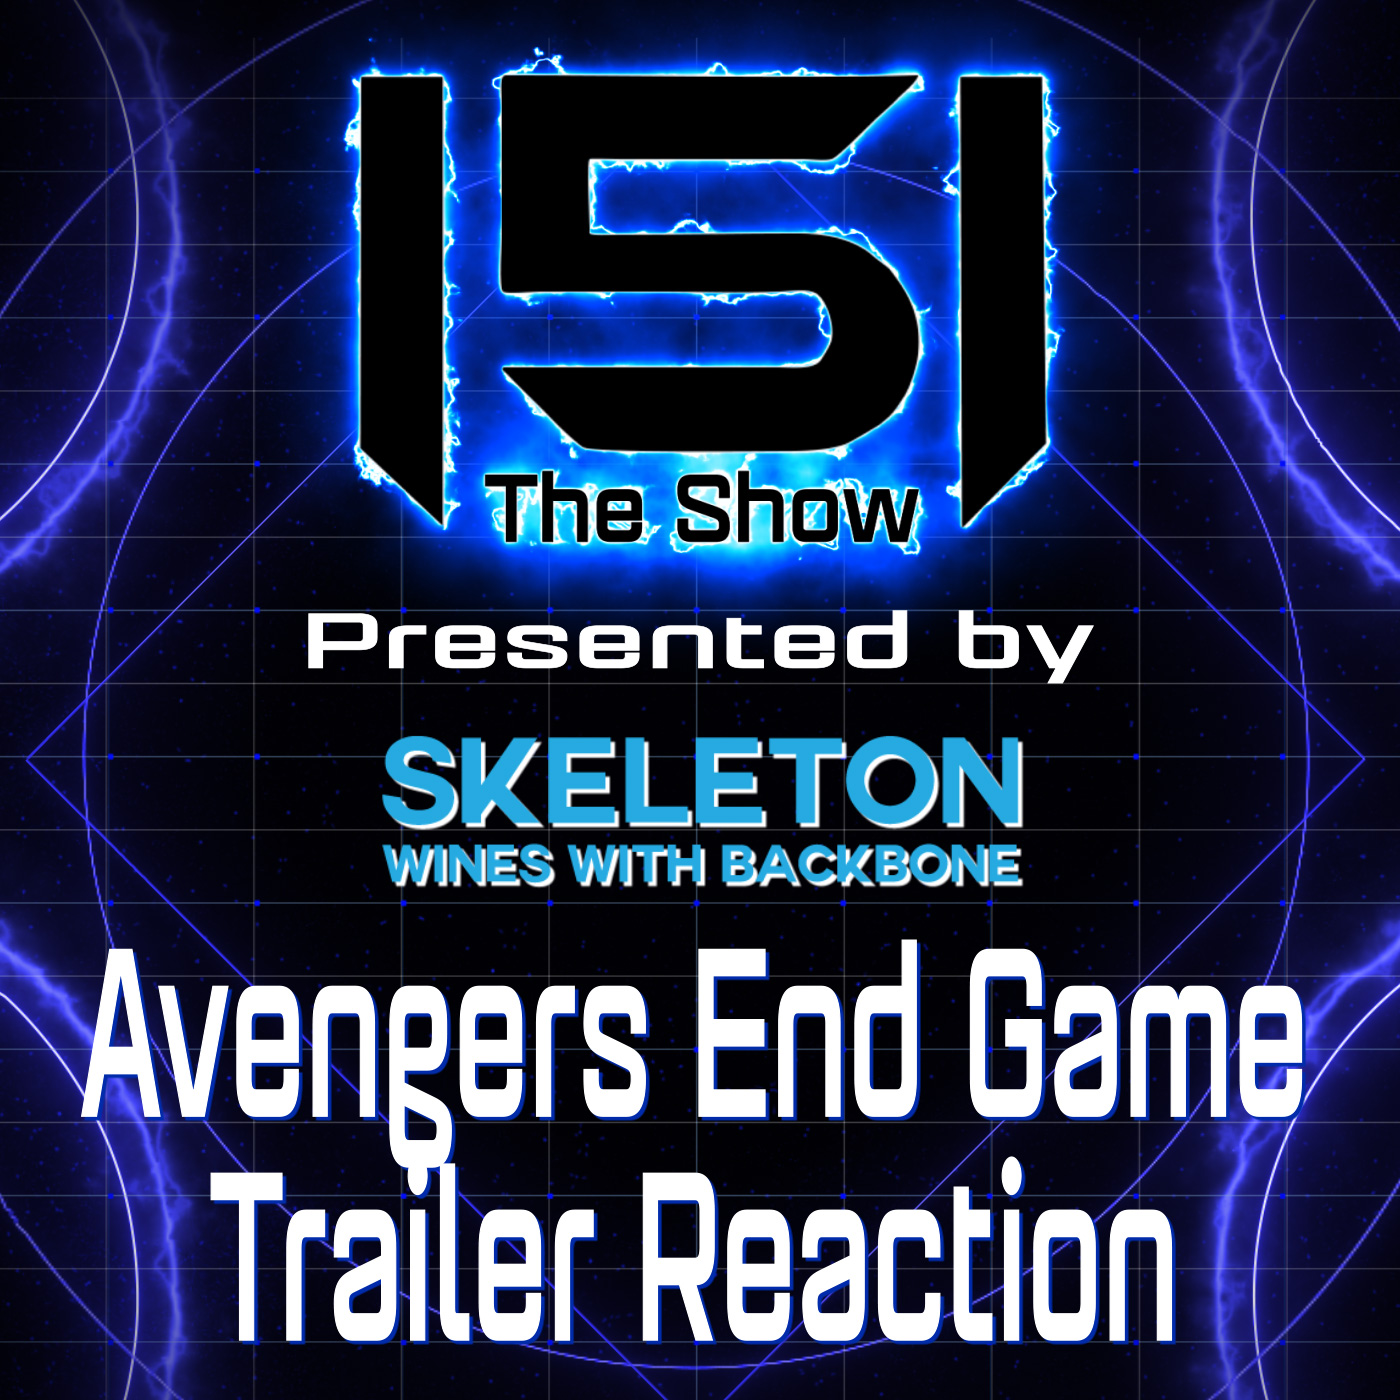 Avengers End Trailer Reaction